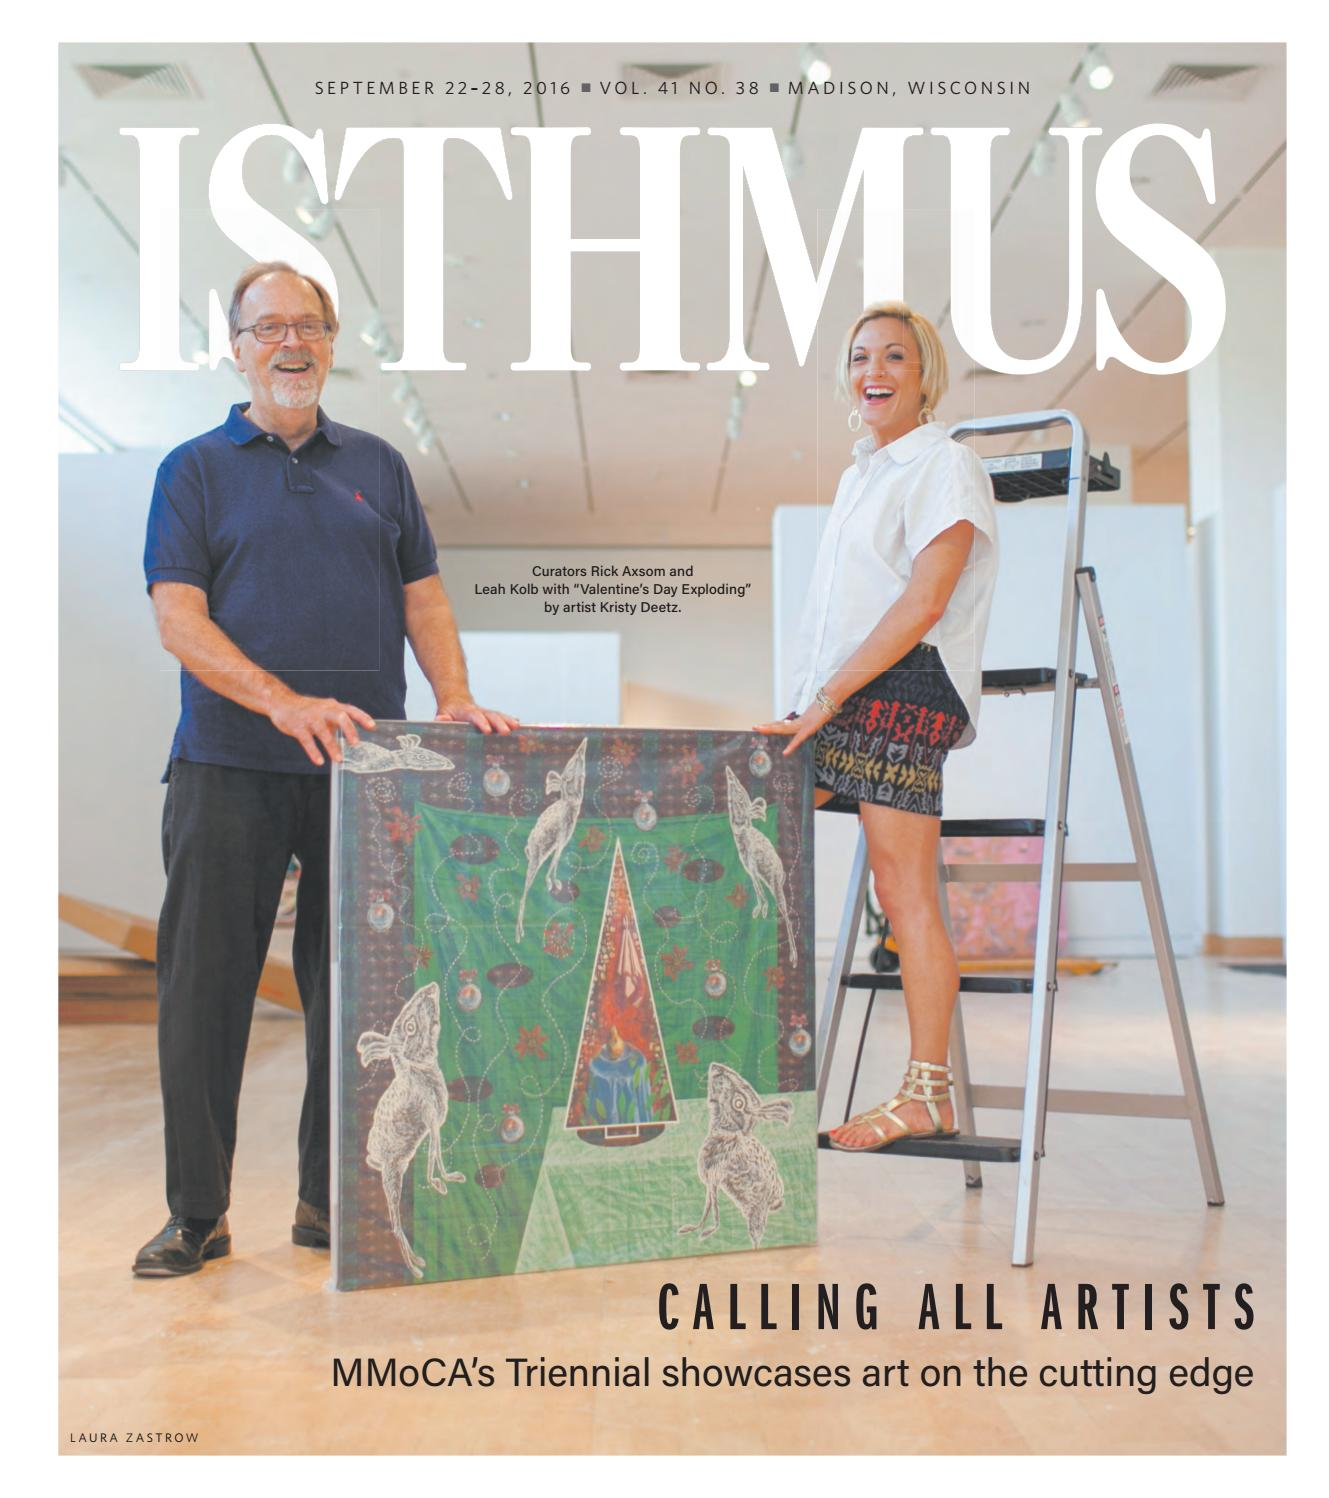 Isthmus Sept 22 28 2016 by Isthmus issuu